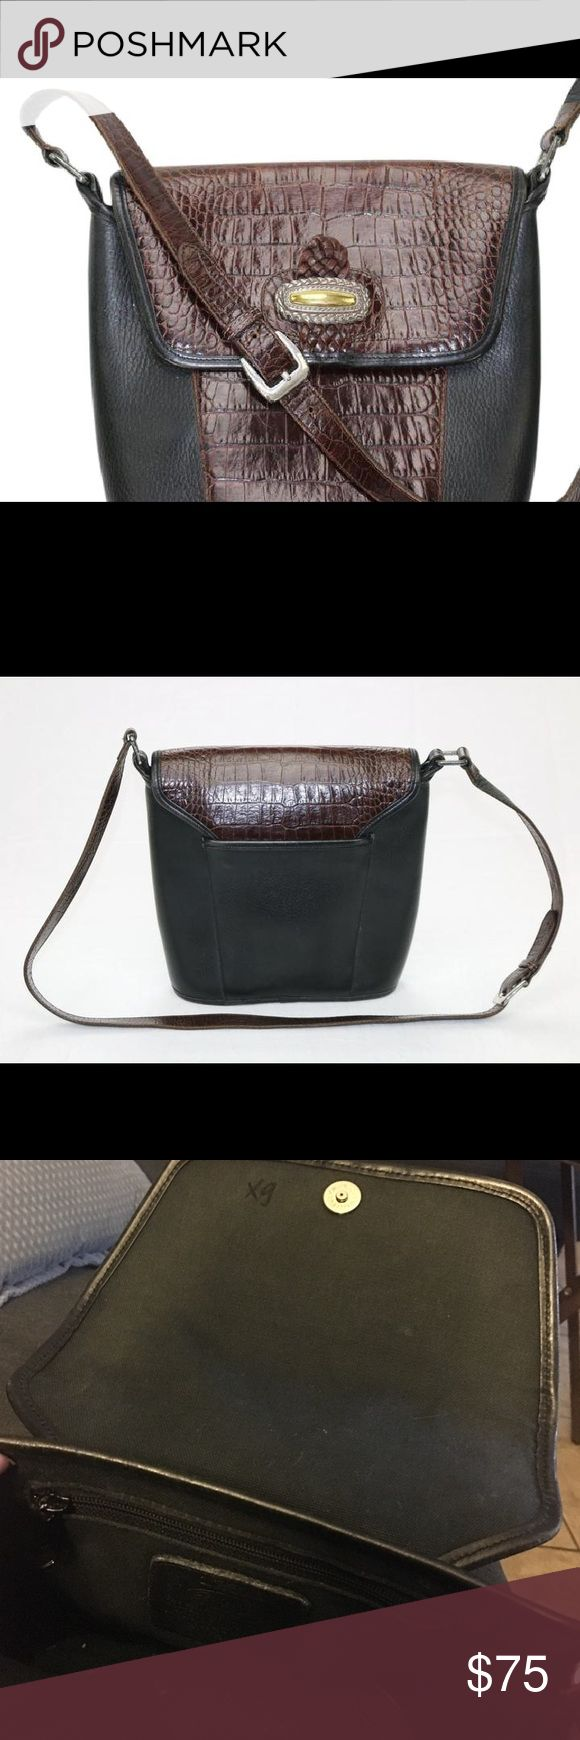 Brighton embossed crocodile finishes black & brown Brighton crossbody embossed crocodile bag finishes are black & brown. Excellent condition.  Registration number A 123386. Handbag has XG written on interior of bag as shown. Make all offers through offer option. Brighton Bags Crossbody Bags